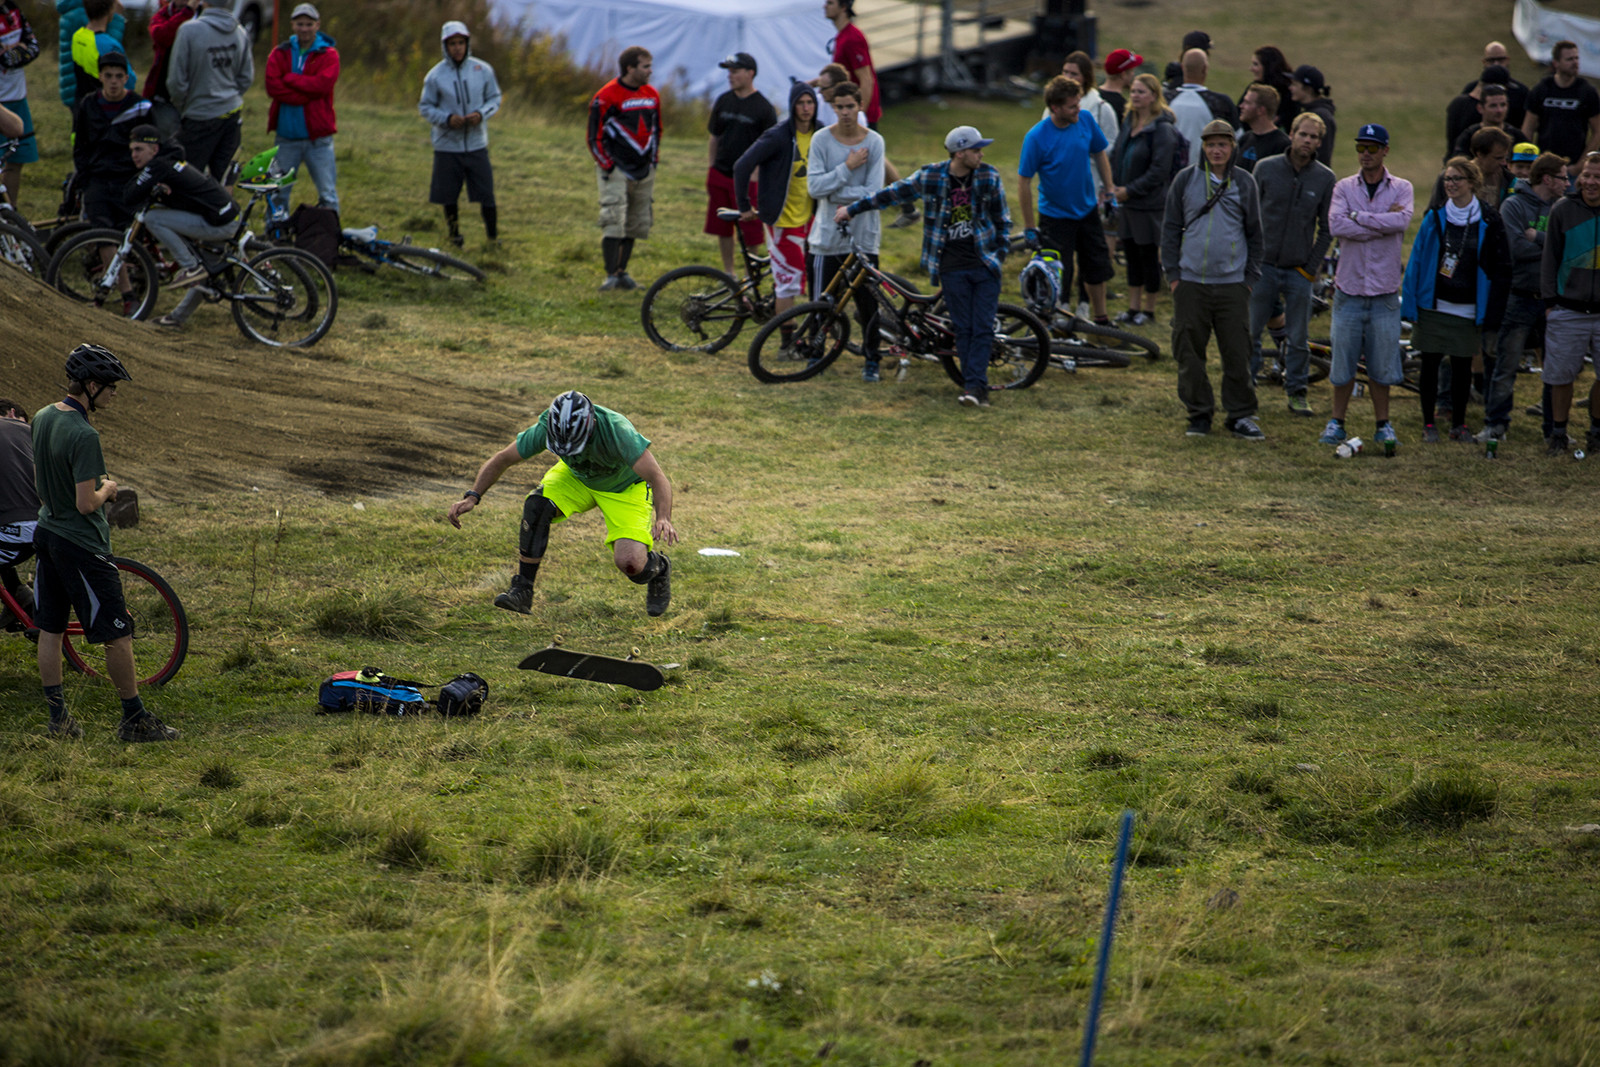 Sven Going Mongo - Has-Beens vs. Wannabes! Industry World Champs Race at Hafjell - Mountain Biking Pictures - Vital MTB